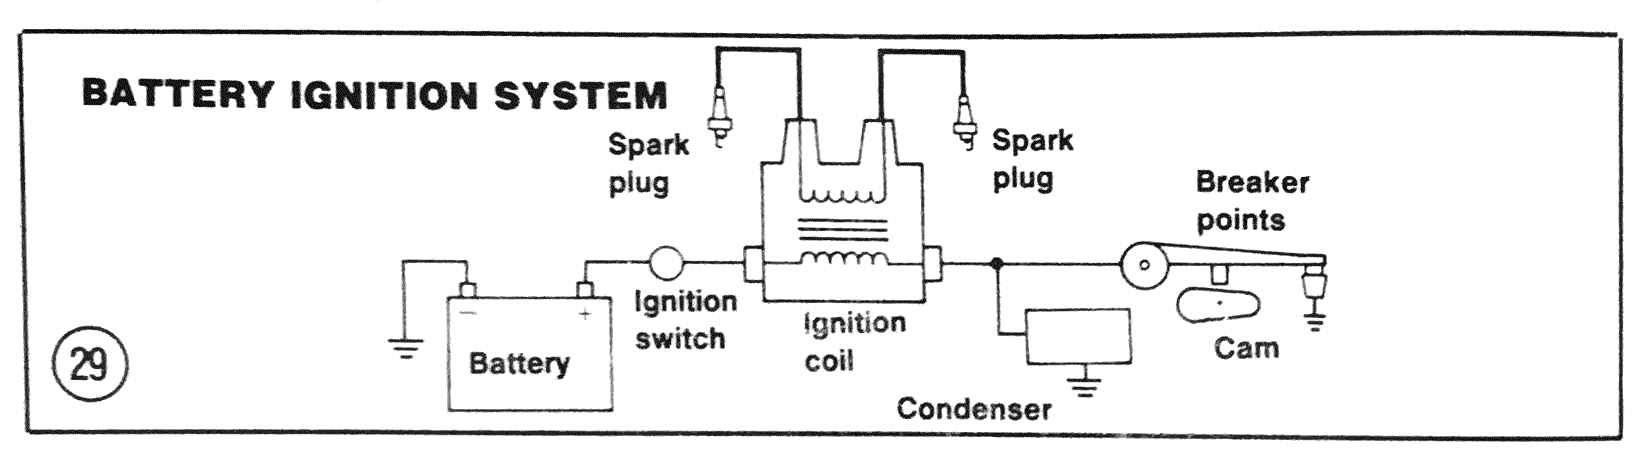 The contact breaker (points) ignition system on ford electronic ignition wiring diagram, chrysler electronic ignition wiring diagram, dodge electronic ignition wiring diagram, toyota electronic ignition wiring diagram,